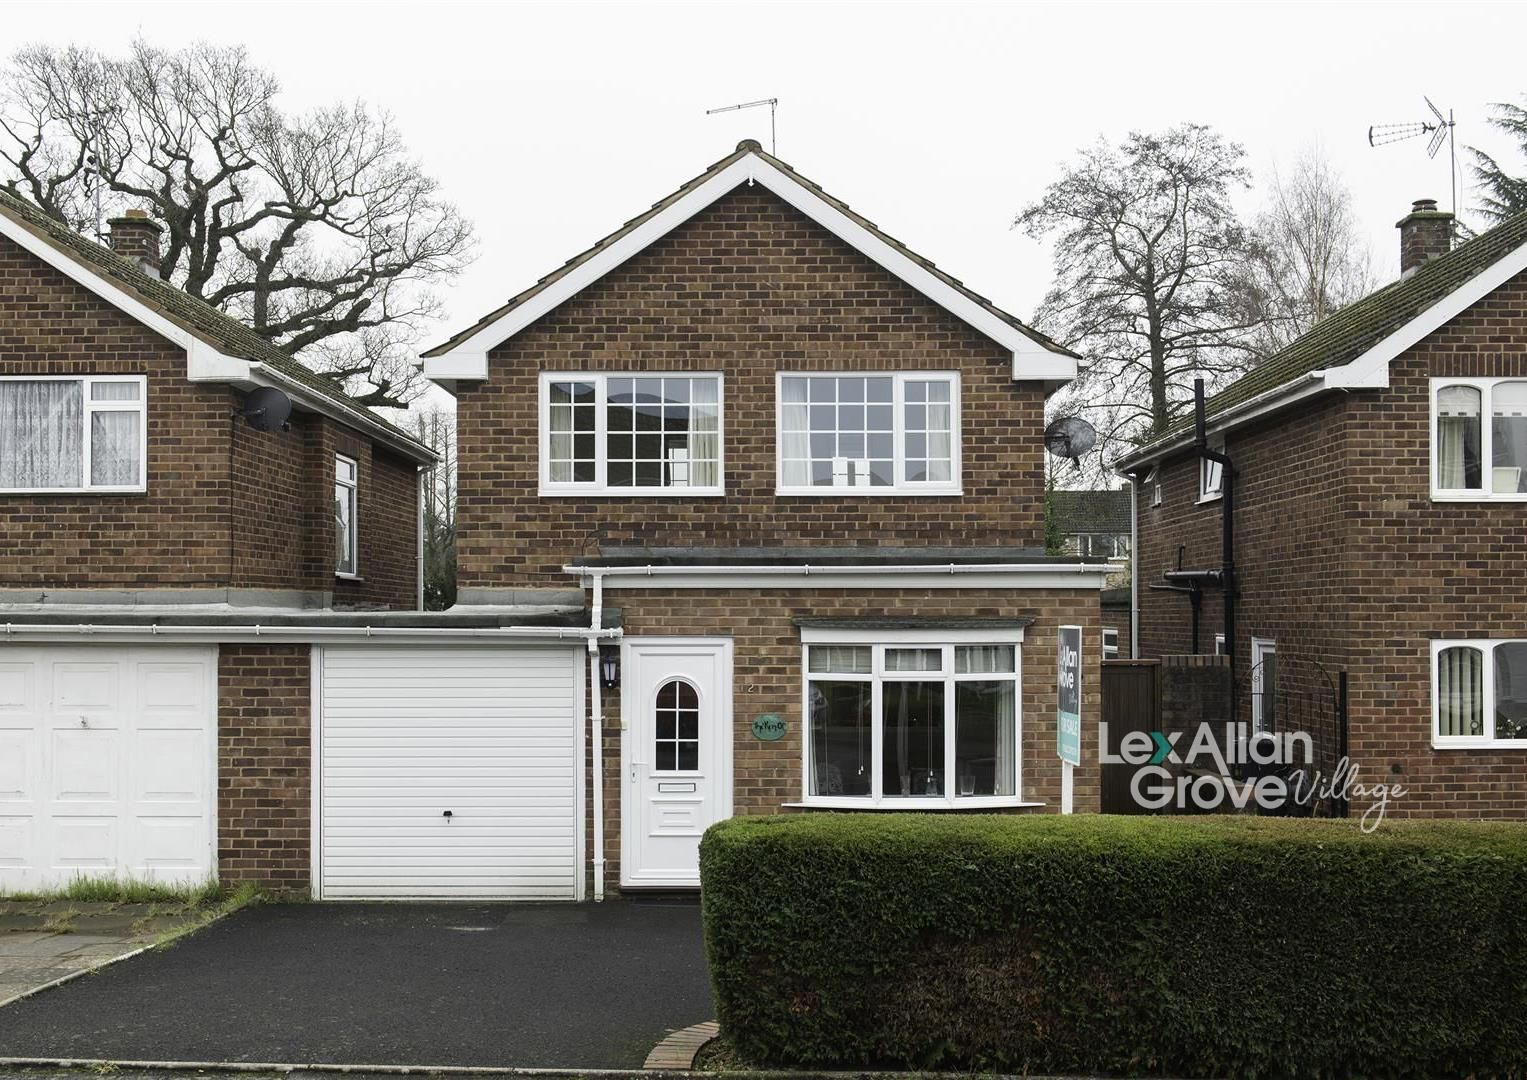 3 bed link-detached-house for sale in Hagley, DY9